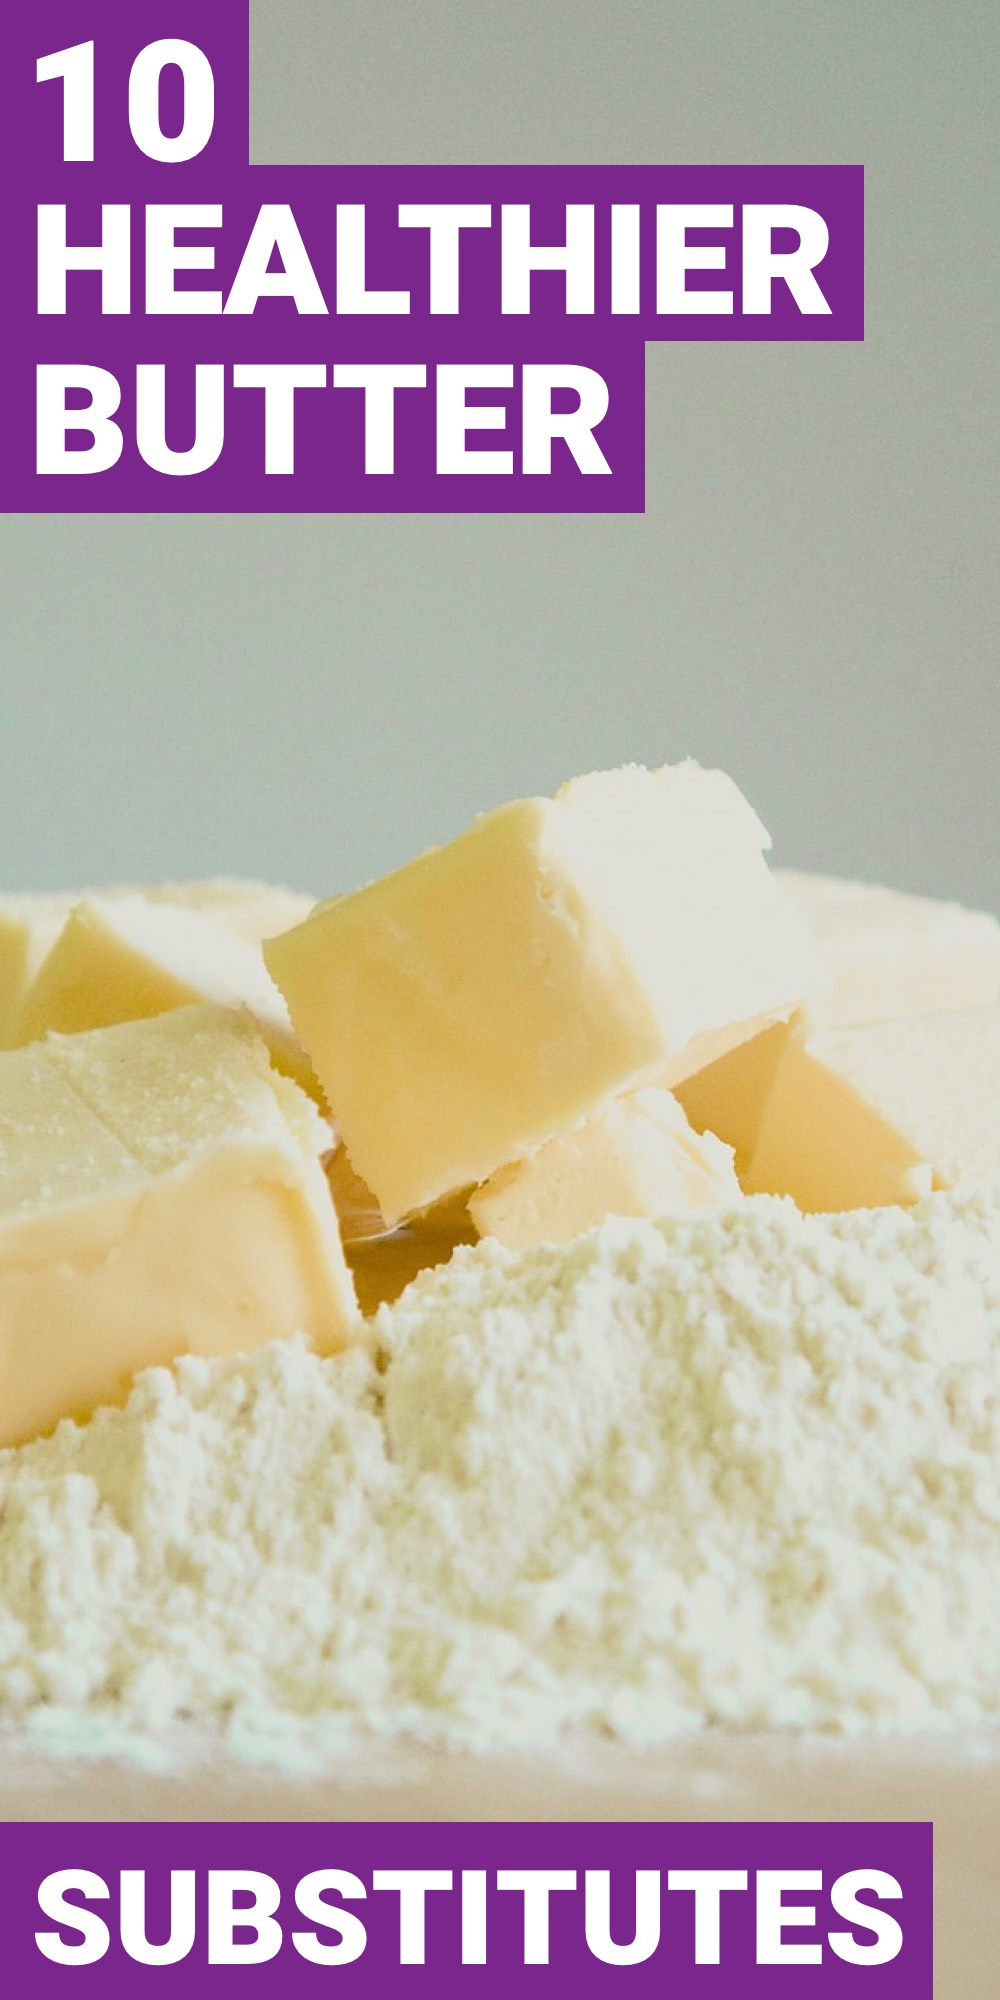 Having a substitute for butter is sometimes necessary. Here are 13 foods you can use as a butter substitute.